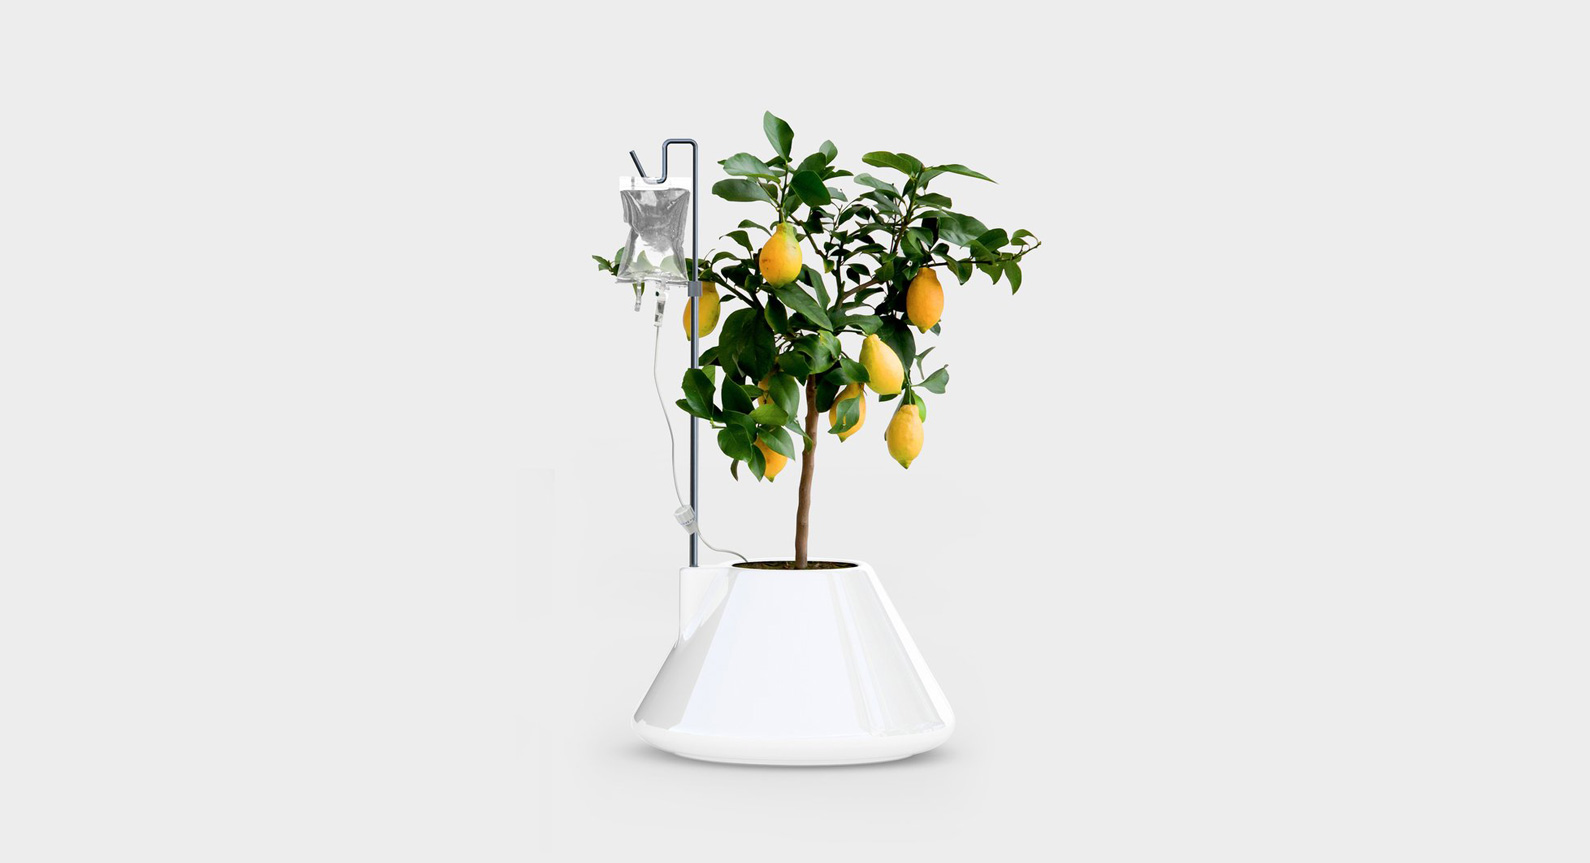 Vitamin Launches A New Range Of Furniture, Lighting & Homeware